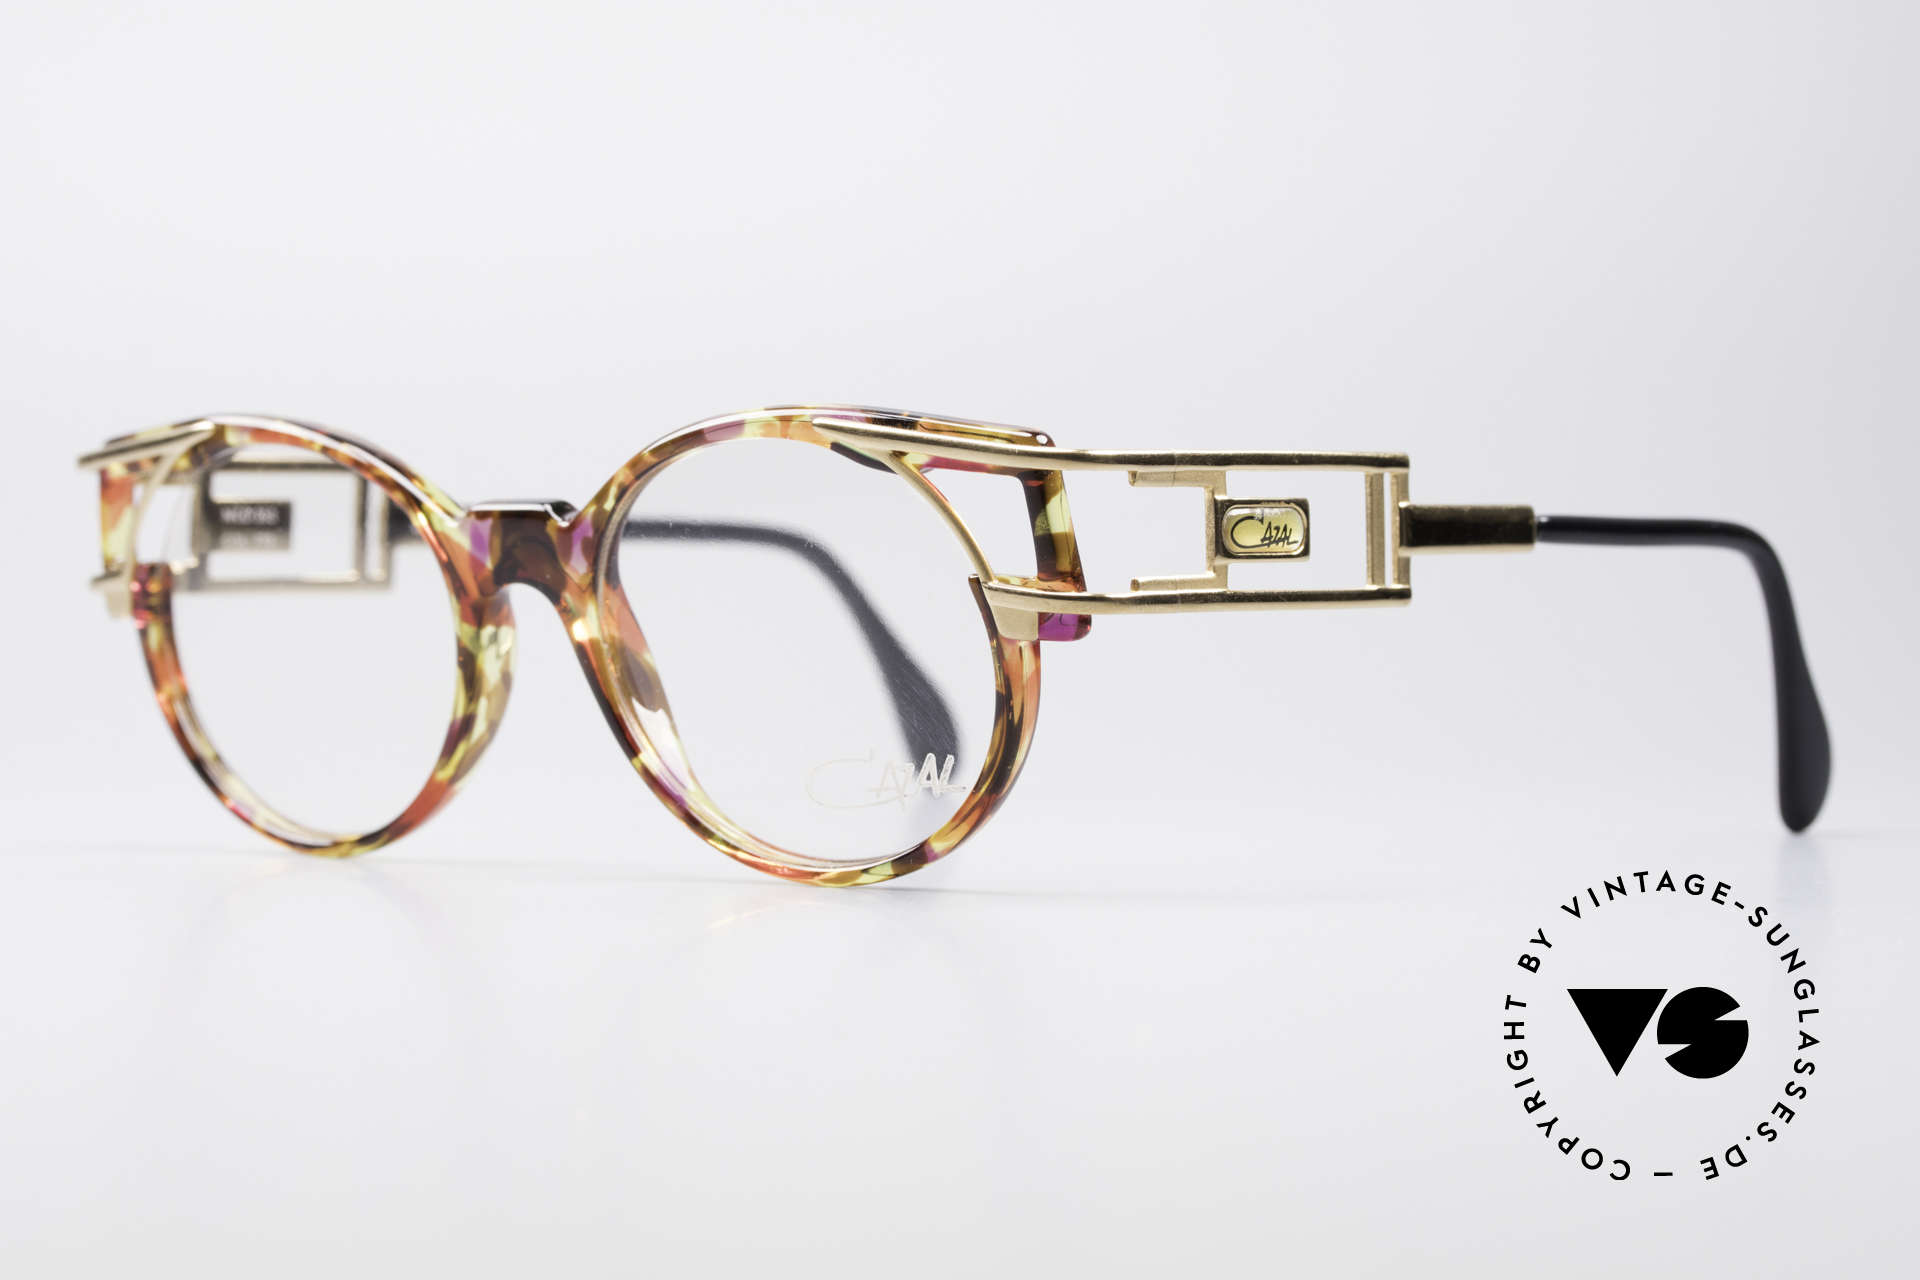 Cazal 353 Old School Hip Hop Eyeglasses, temple design is identical to the legendary Cazal 958, Made for Men and Women